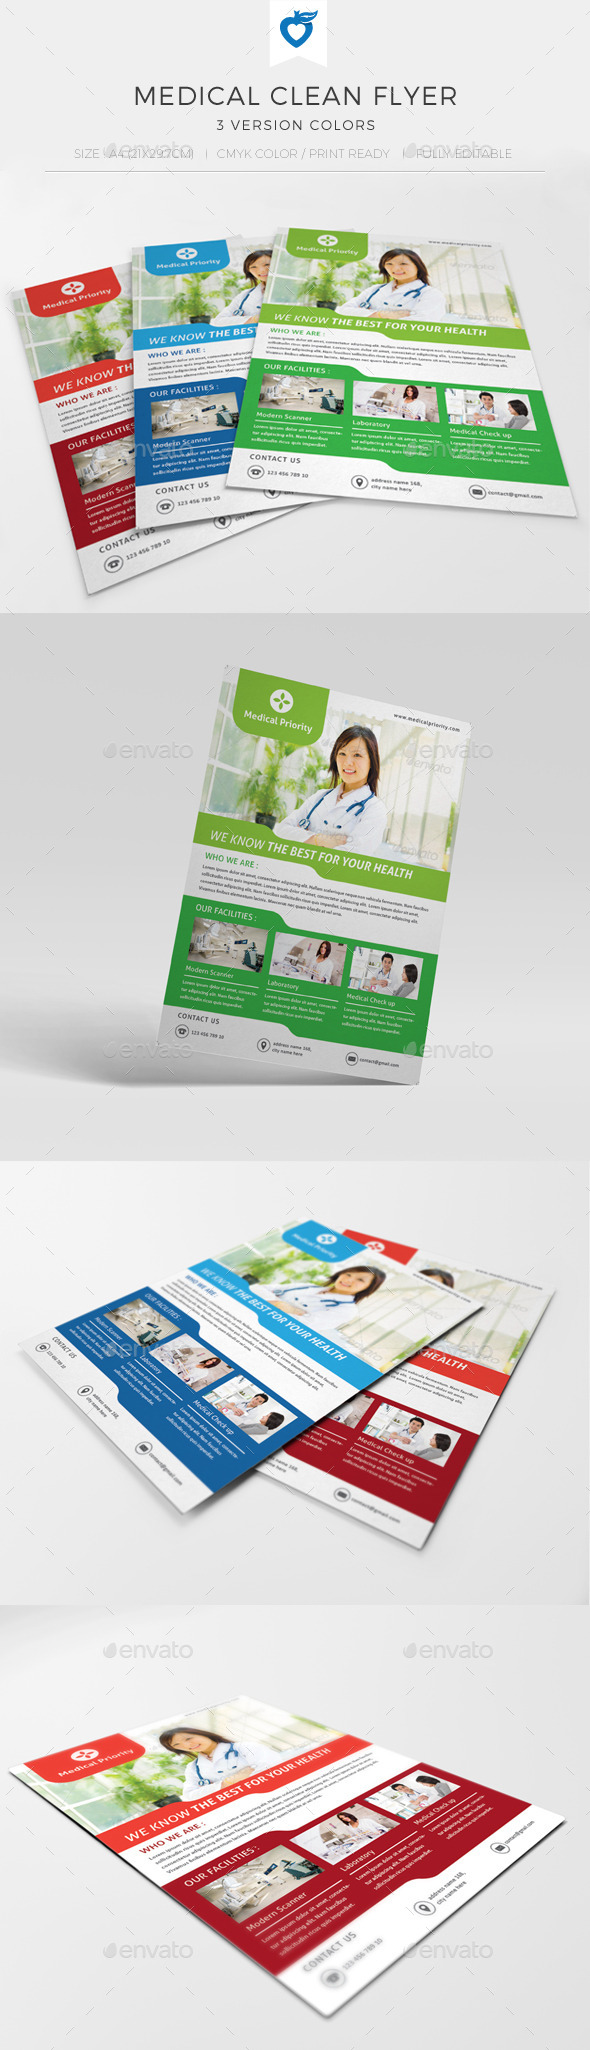 Medical Clean Flyer - Corporate Flyers